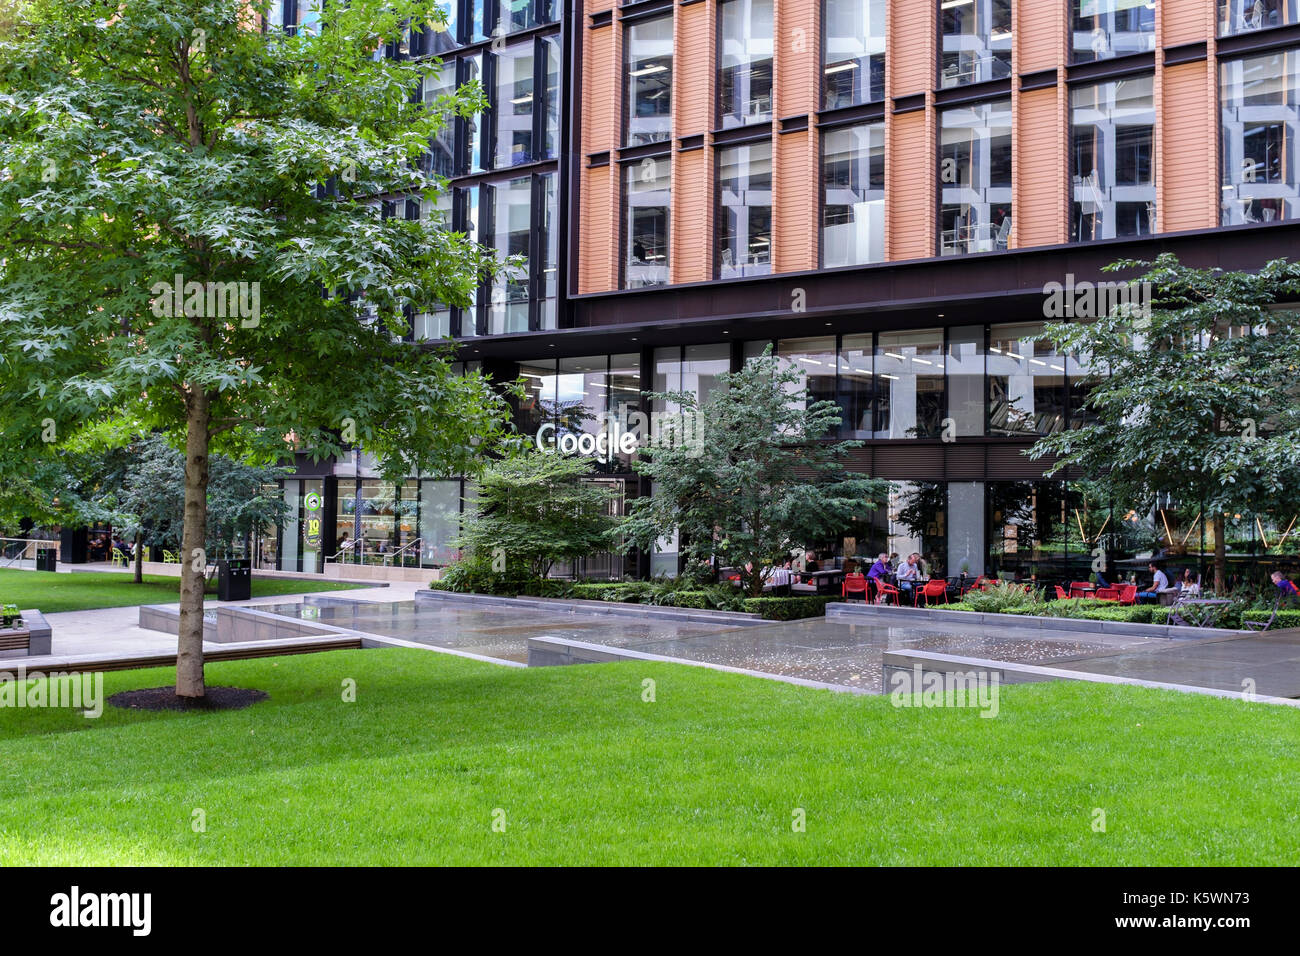 London offices of Google at Pancras Square, King's Cross, London, UK - Stock Image